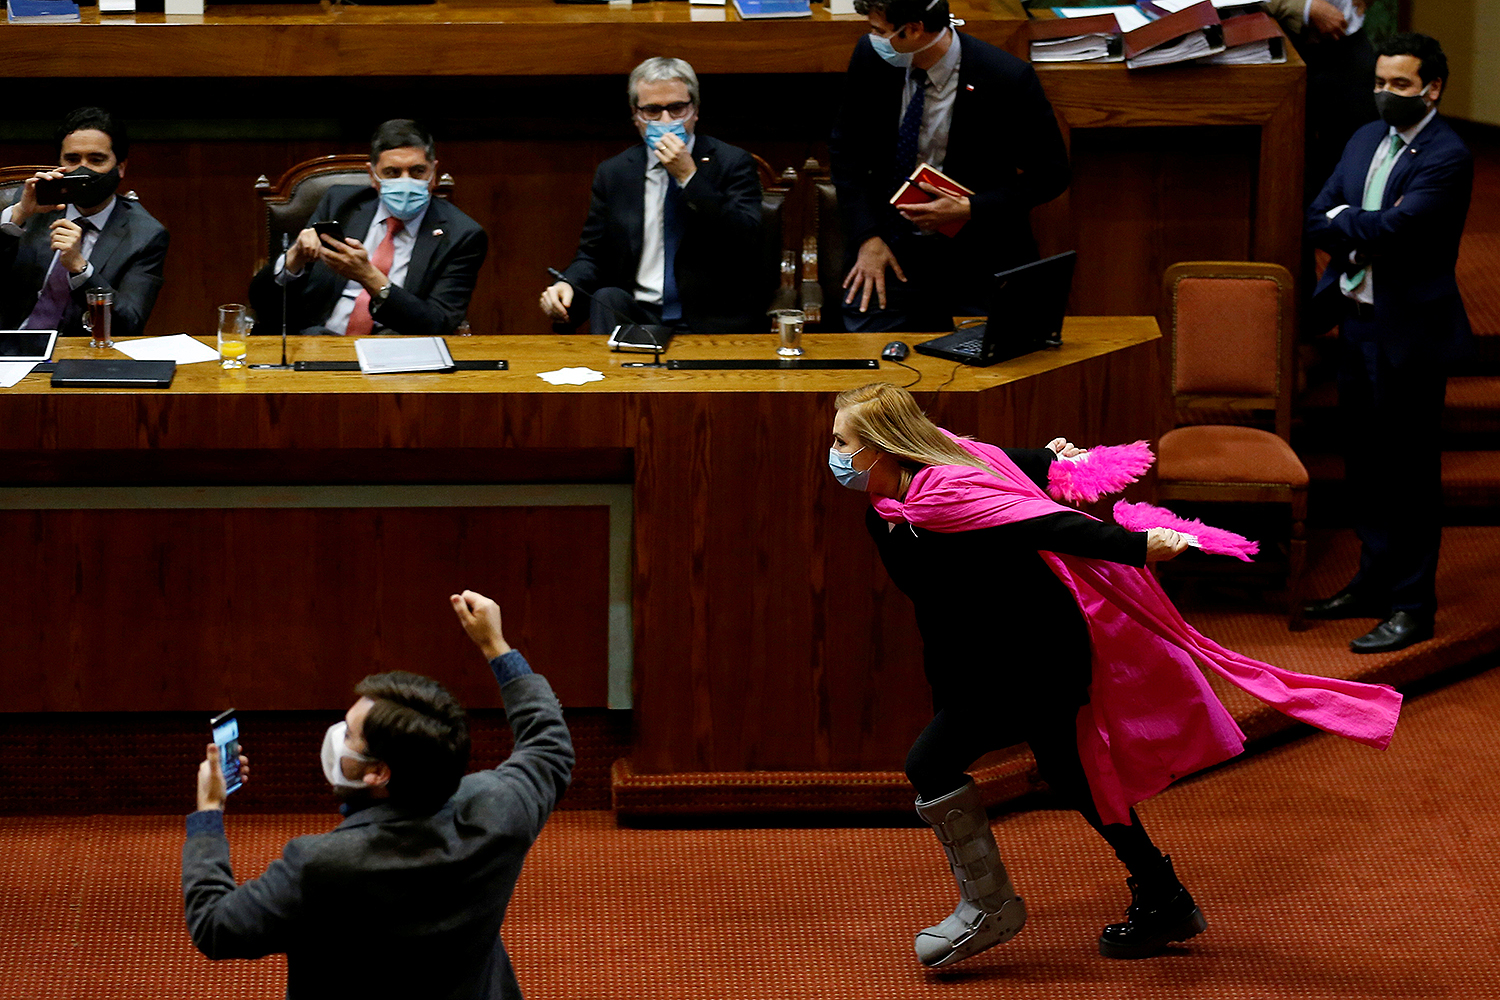 Chilean lawmaker Pamela Jiles runs through congress wearing a pink cape and waving matching fans to celebrate passage in the lower house of a coronavirus emergency aid measure in Valparaiso, Chile, on July 15. Rodrigo Garrido/REUTERS